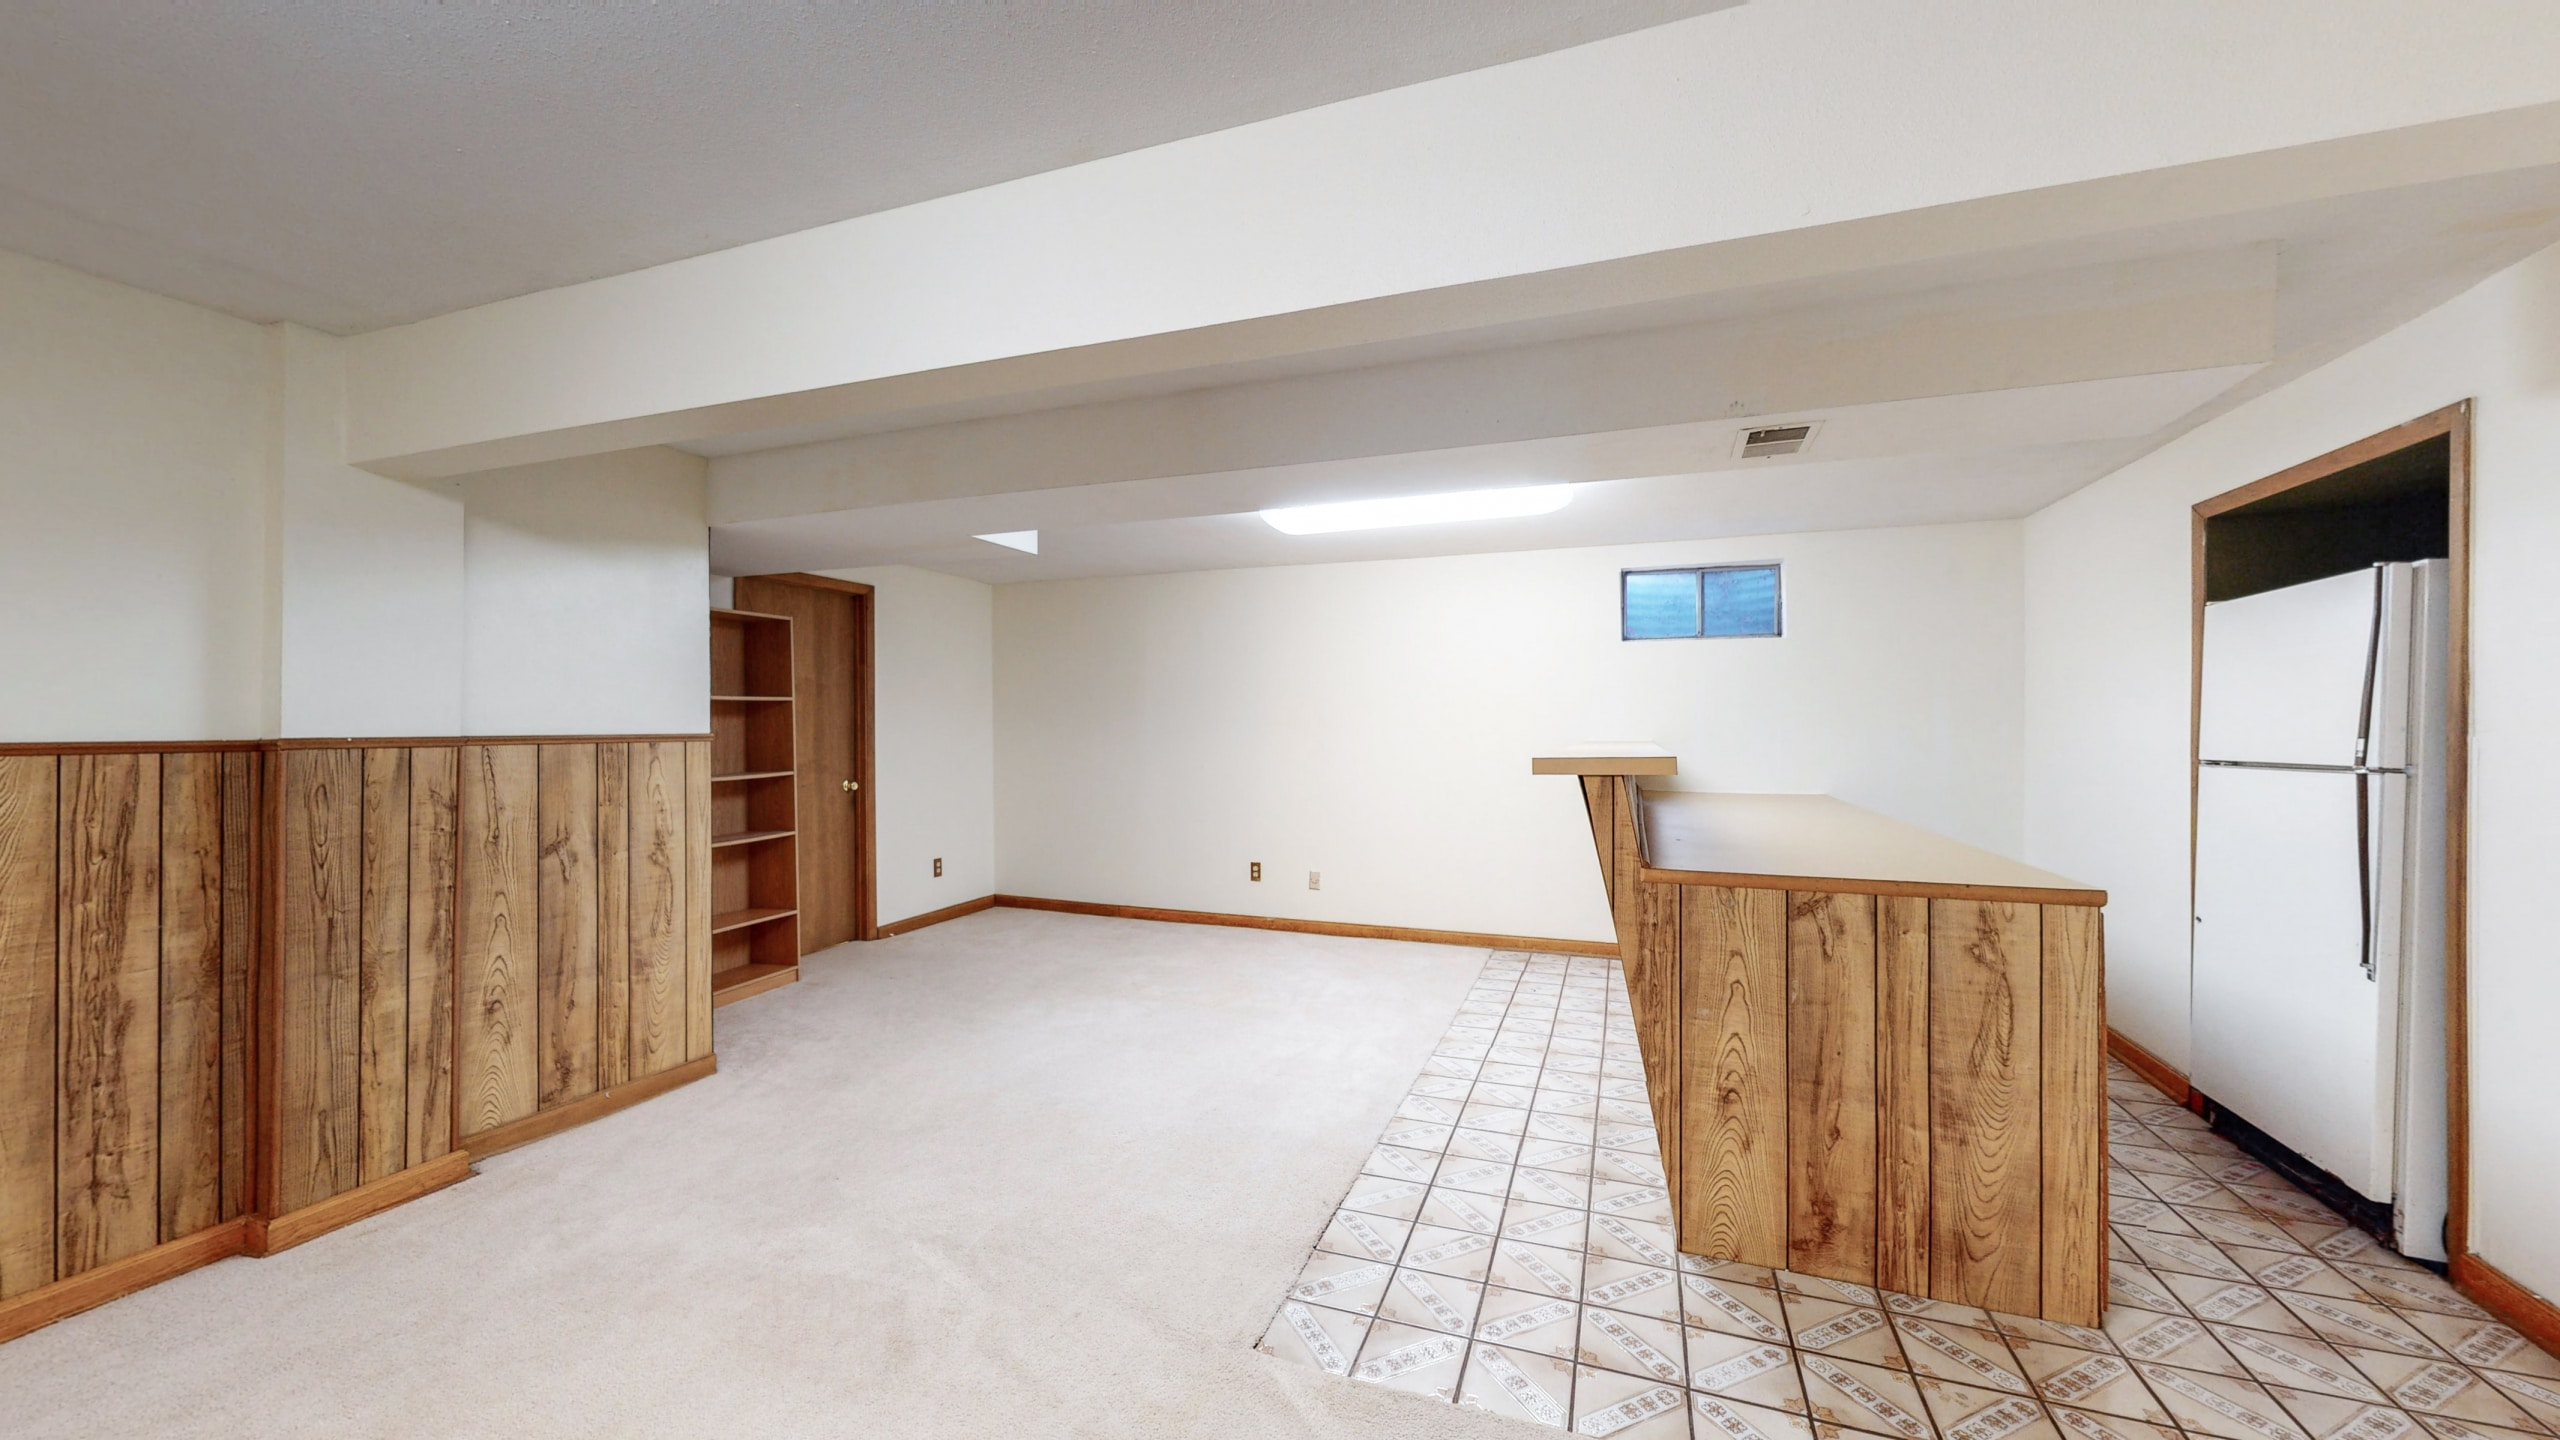 Brighton Home For Sale, basement with wood wainscoting and white walls